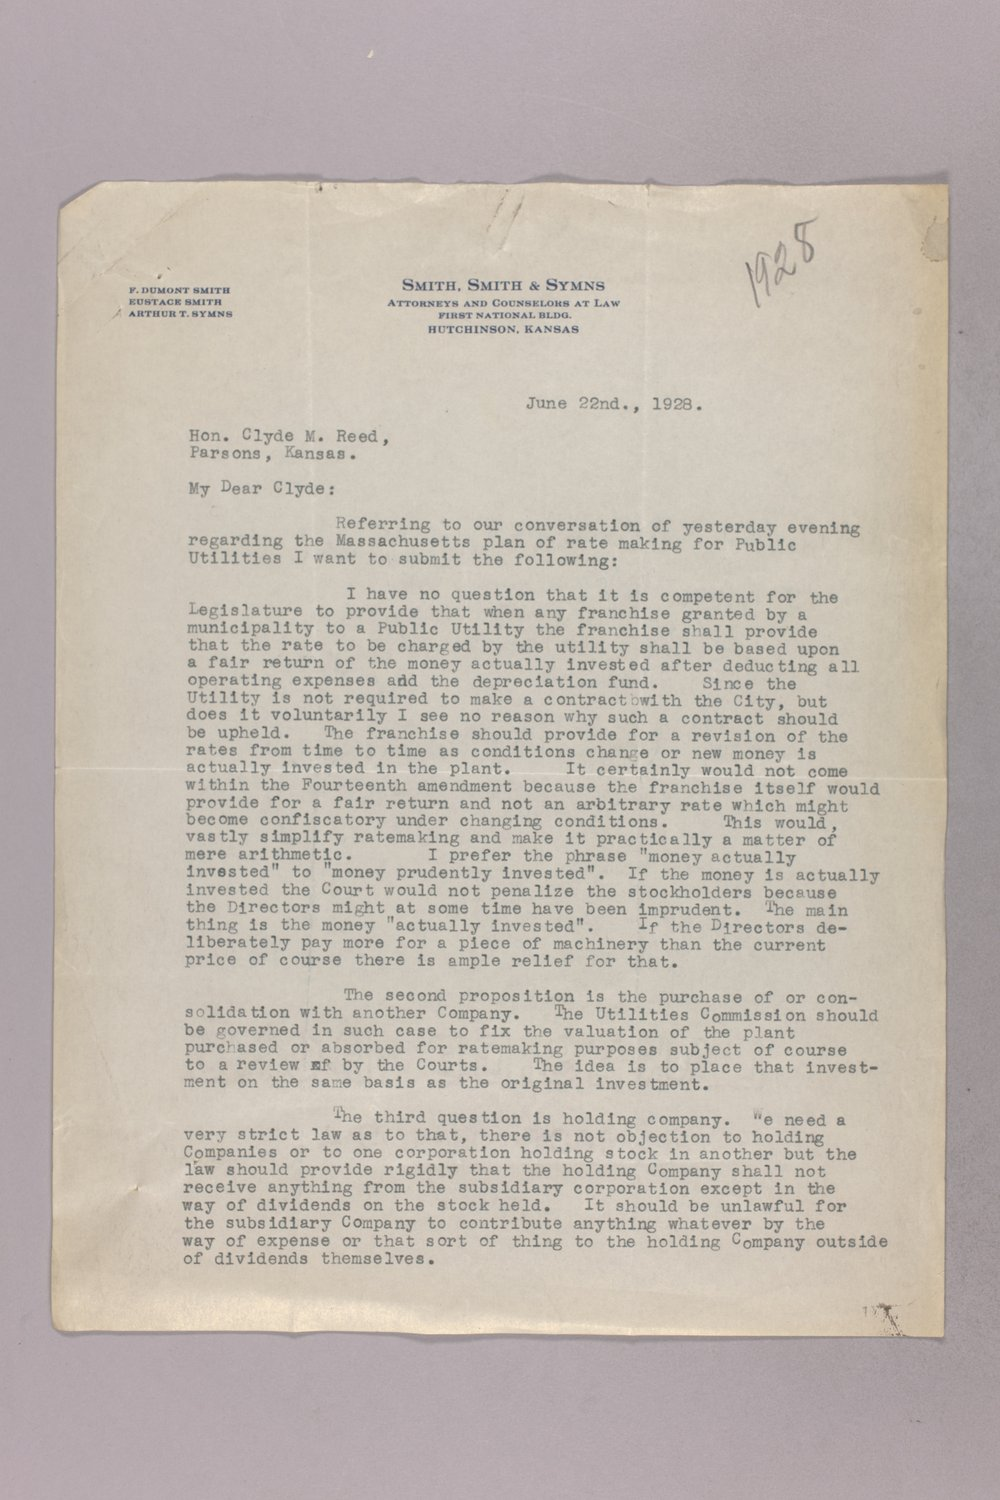 Governor Clyde M. Reed correspondence, Public Service Commission - 1